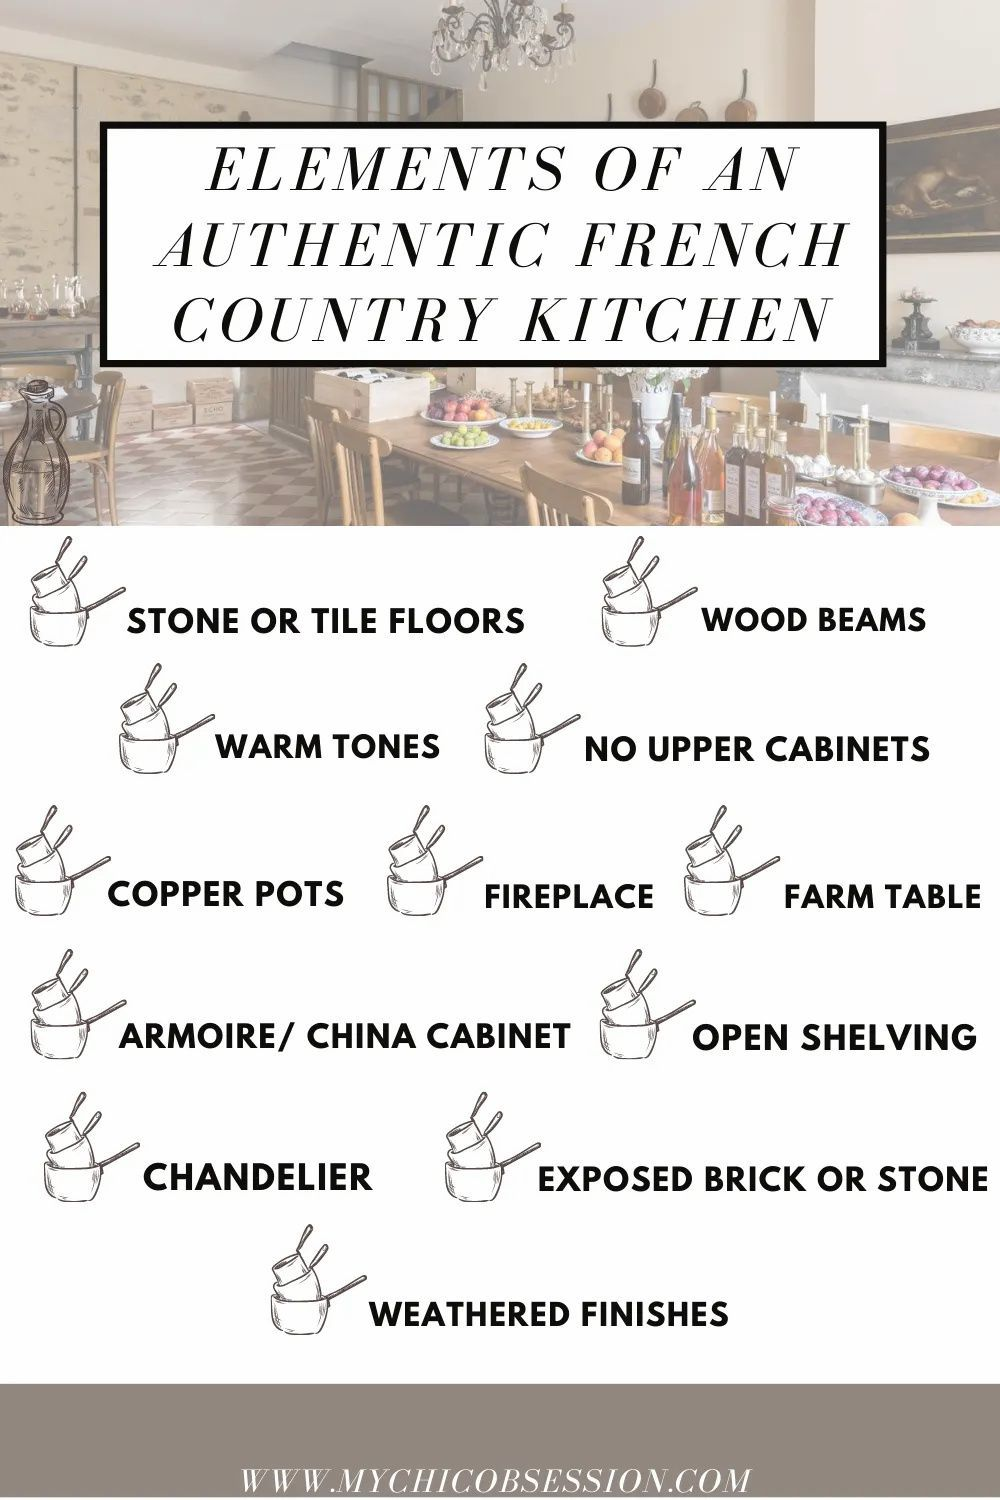 How To Get An Authentic French Country Kitchen French Country Kitchen Country Kitchen French Country